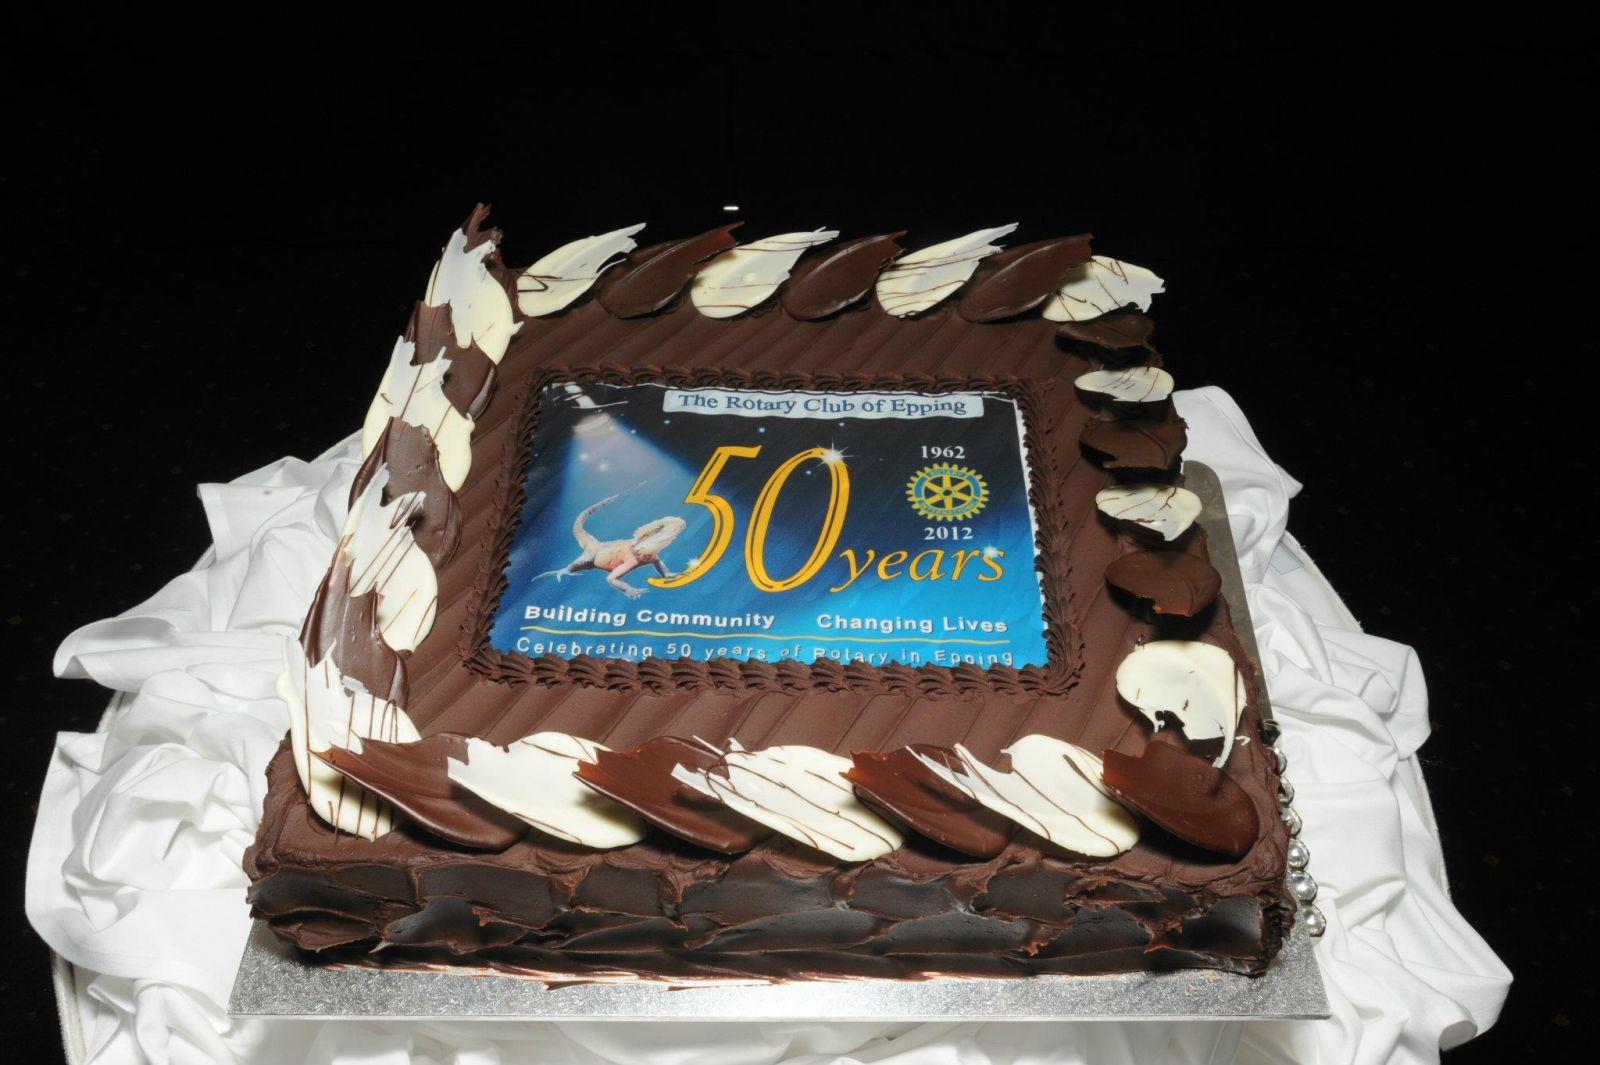 Rotary Club of Epping 50th Anniversary